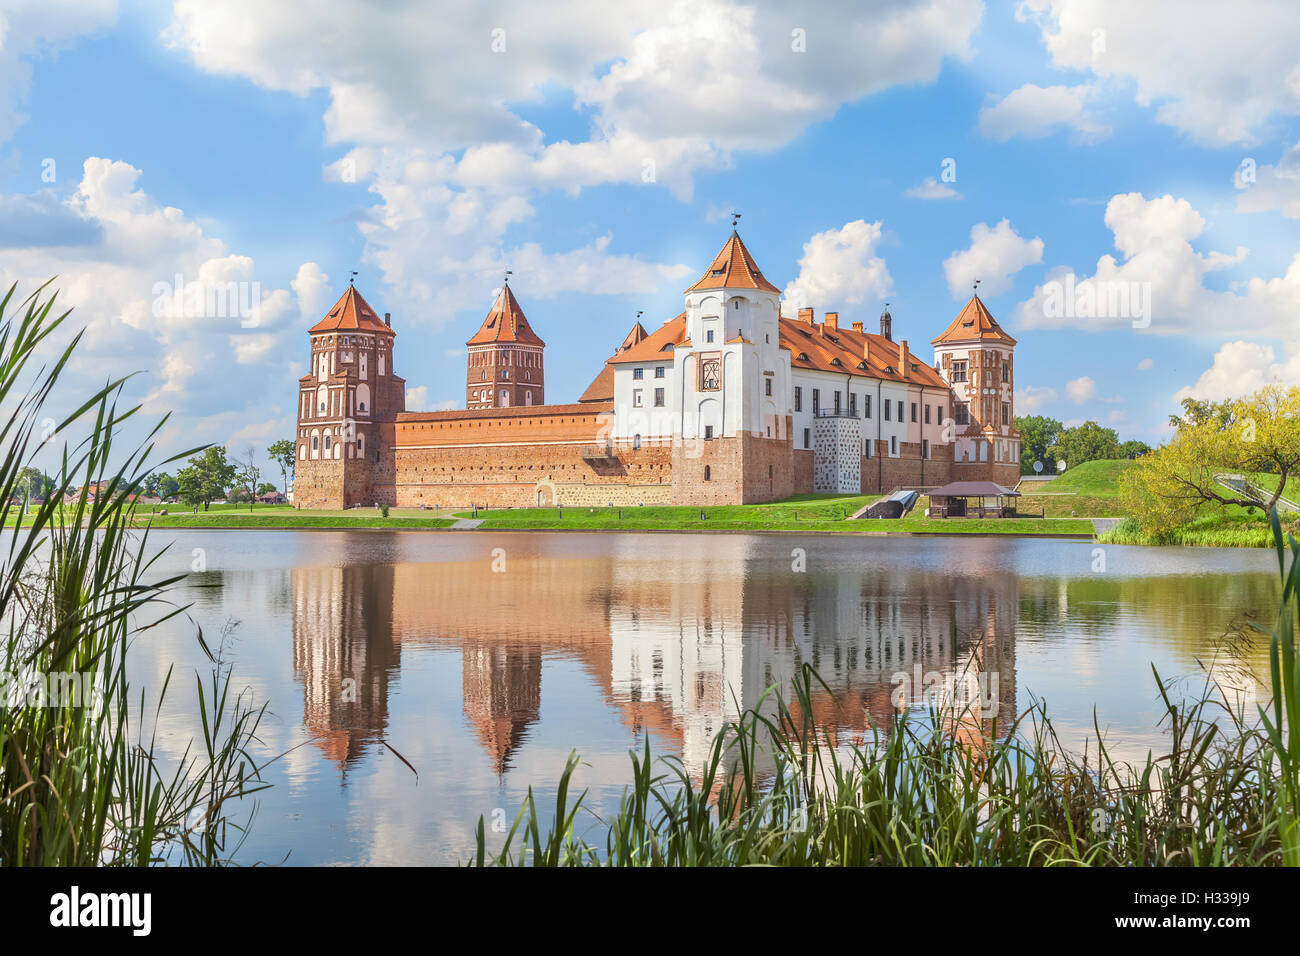 Mir castle in sunny summer day, Belarus - Stock Image